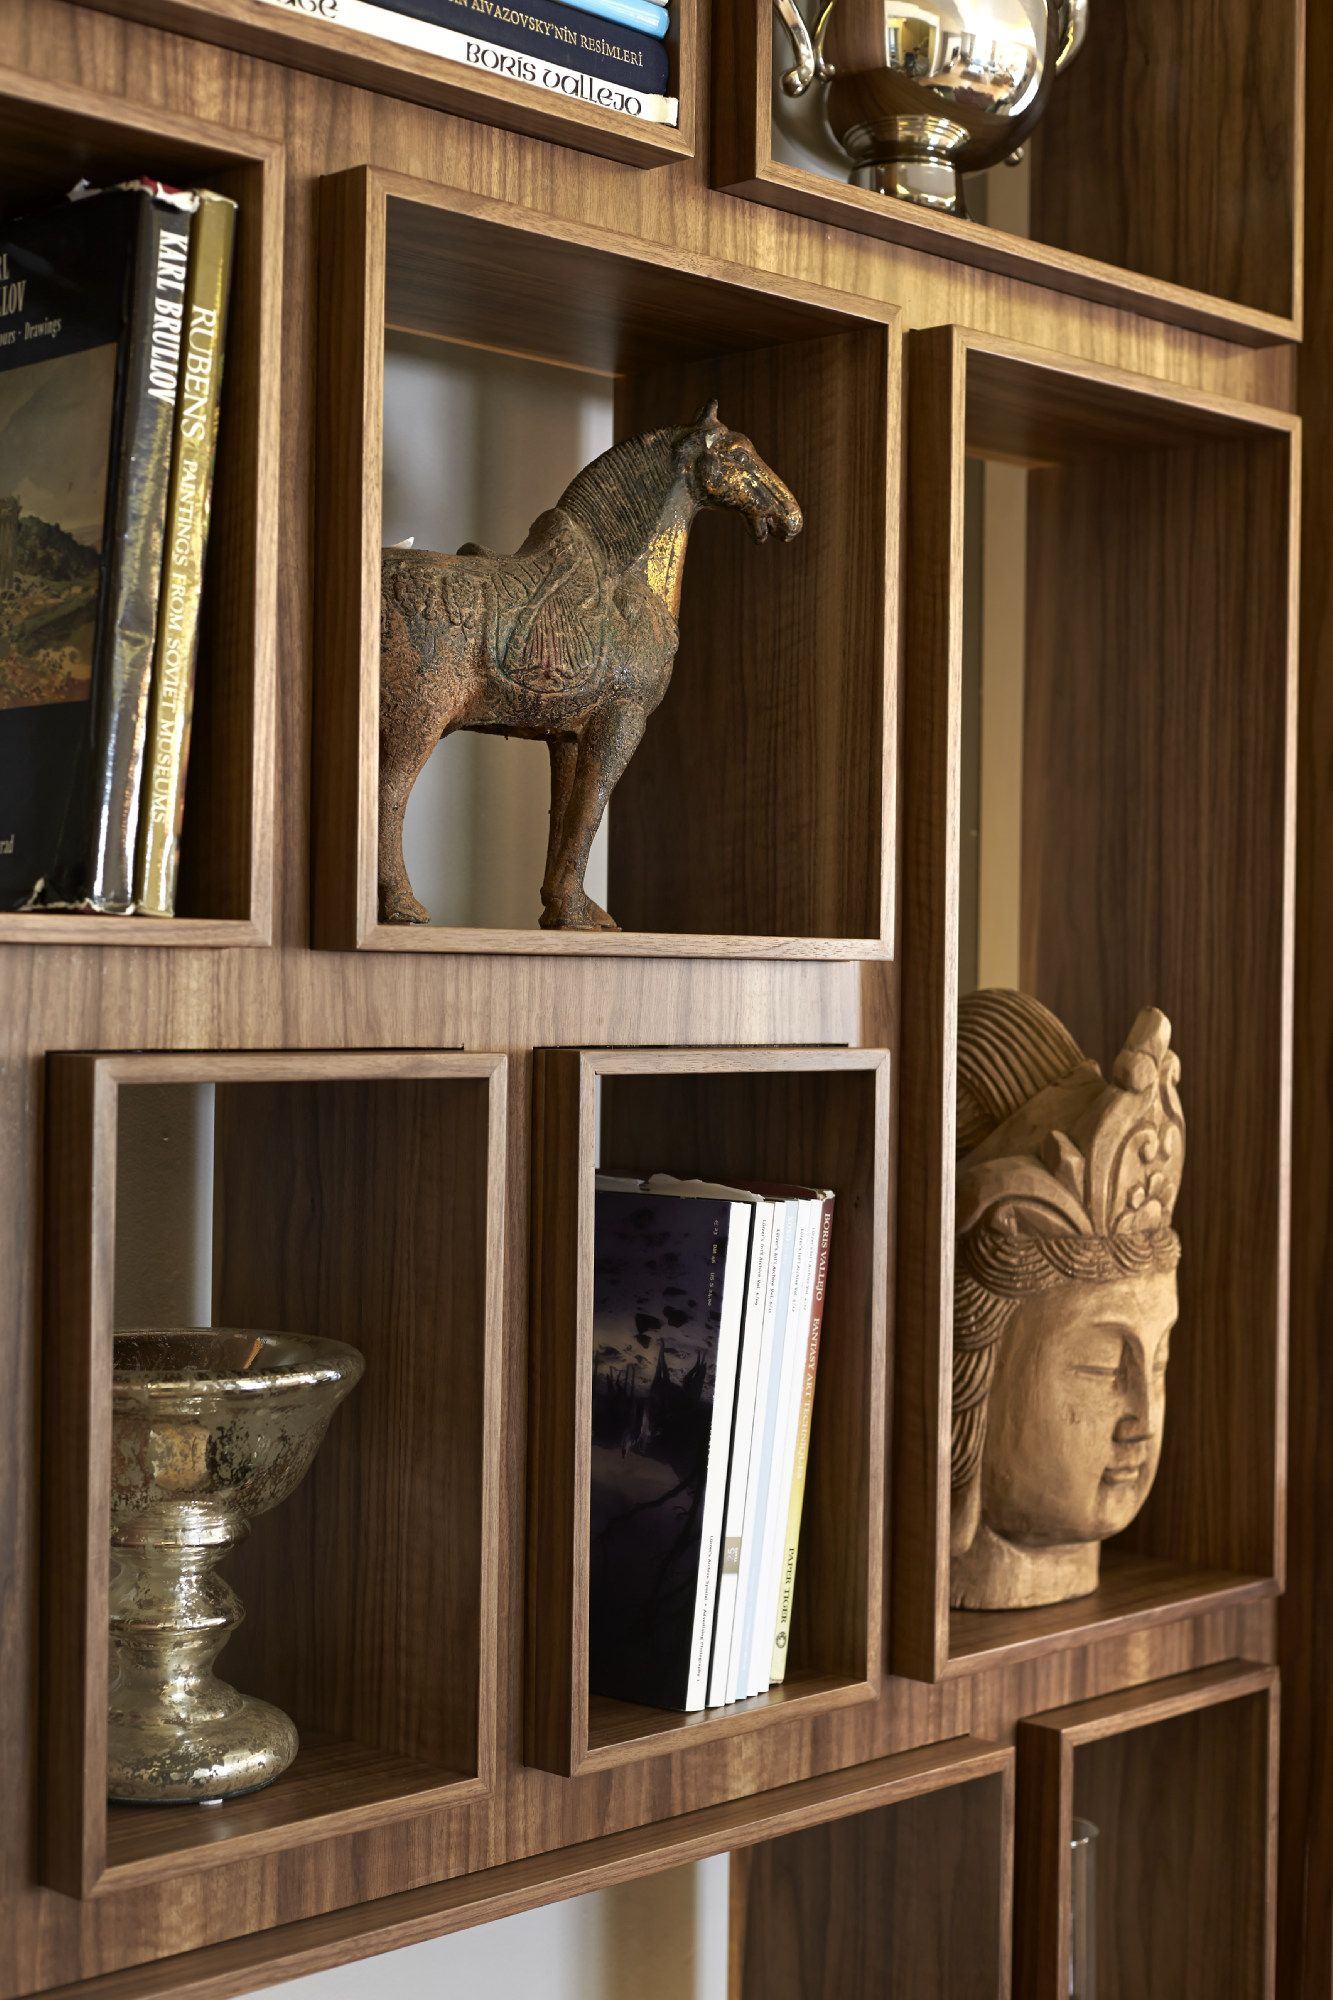 Built in bookcase to display treasures craftmanship for Innenraumdesign ideen